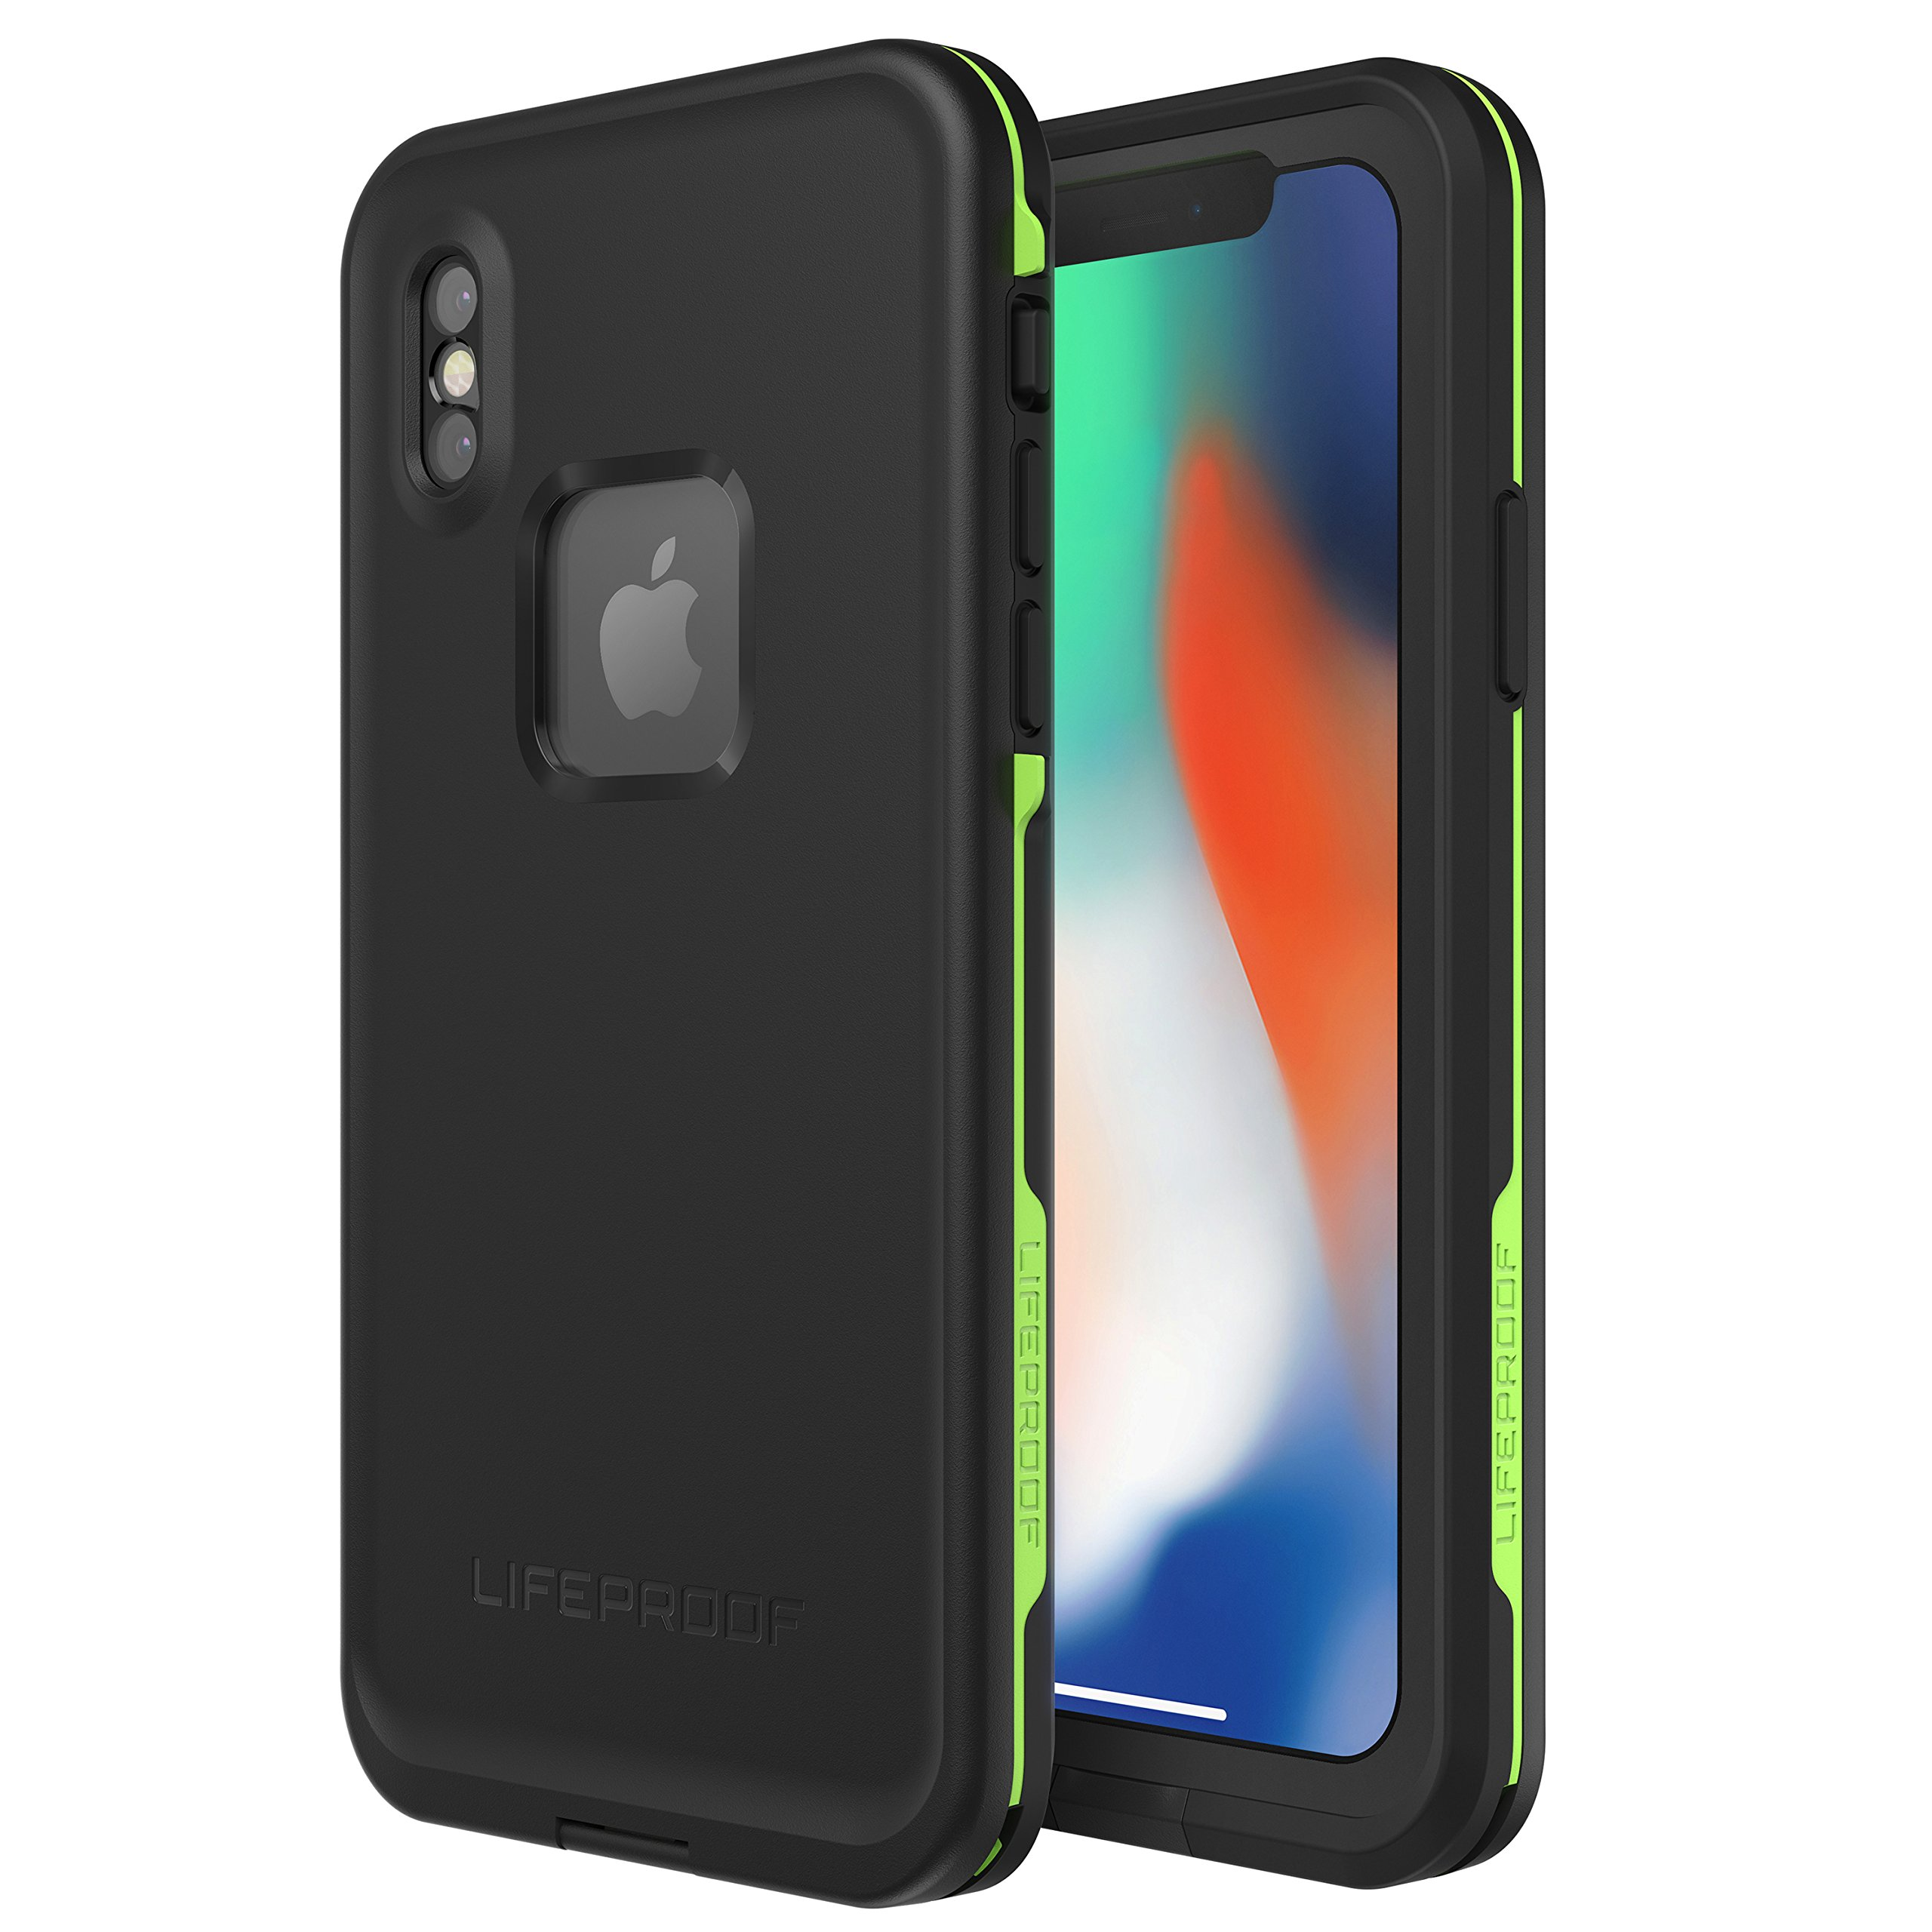 Lifeproof FRĒ SERIES Waterproof Case for iPhone X (ONLY) - Retail Packaging - NIGHT LITE (BLACK/LIME) by LifeProof (Image #1)